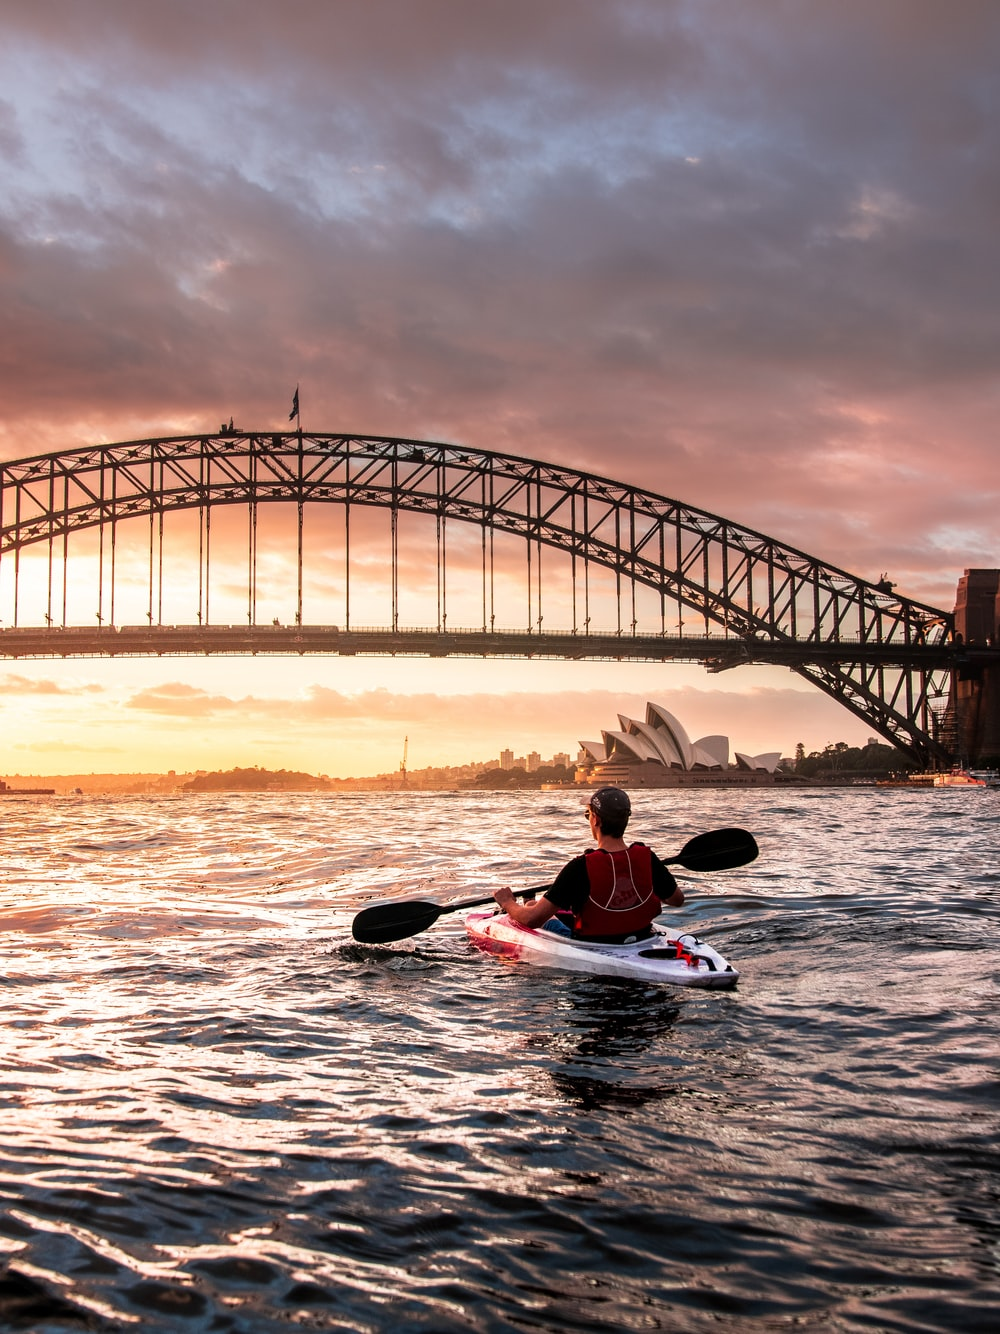 person riding kayak towards metal bridge